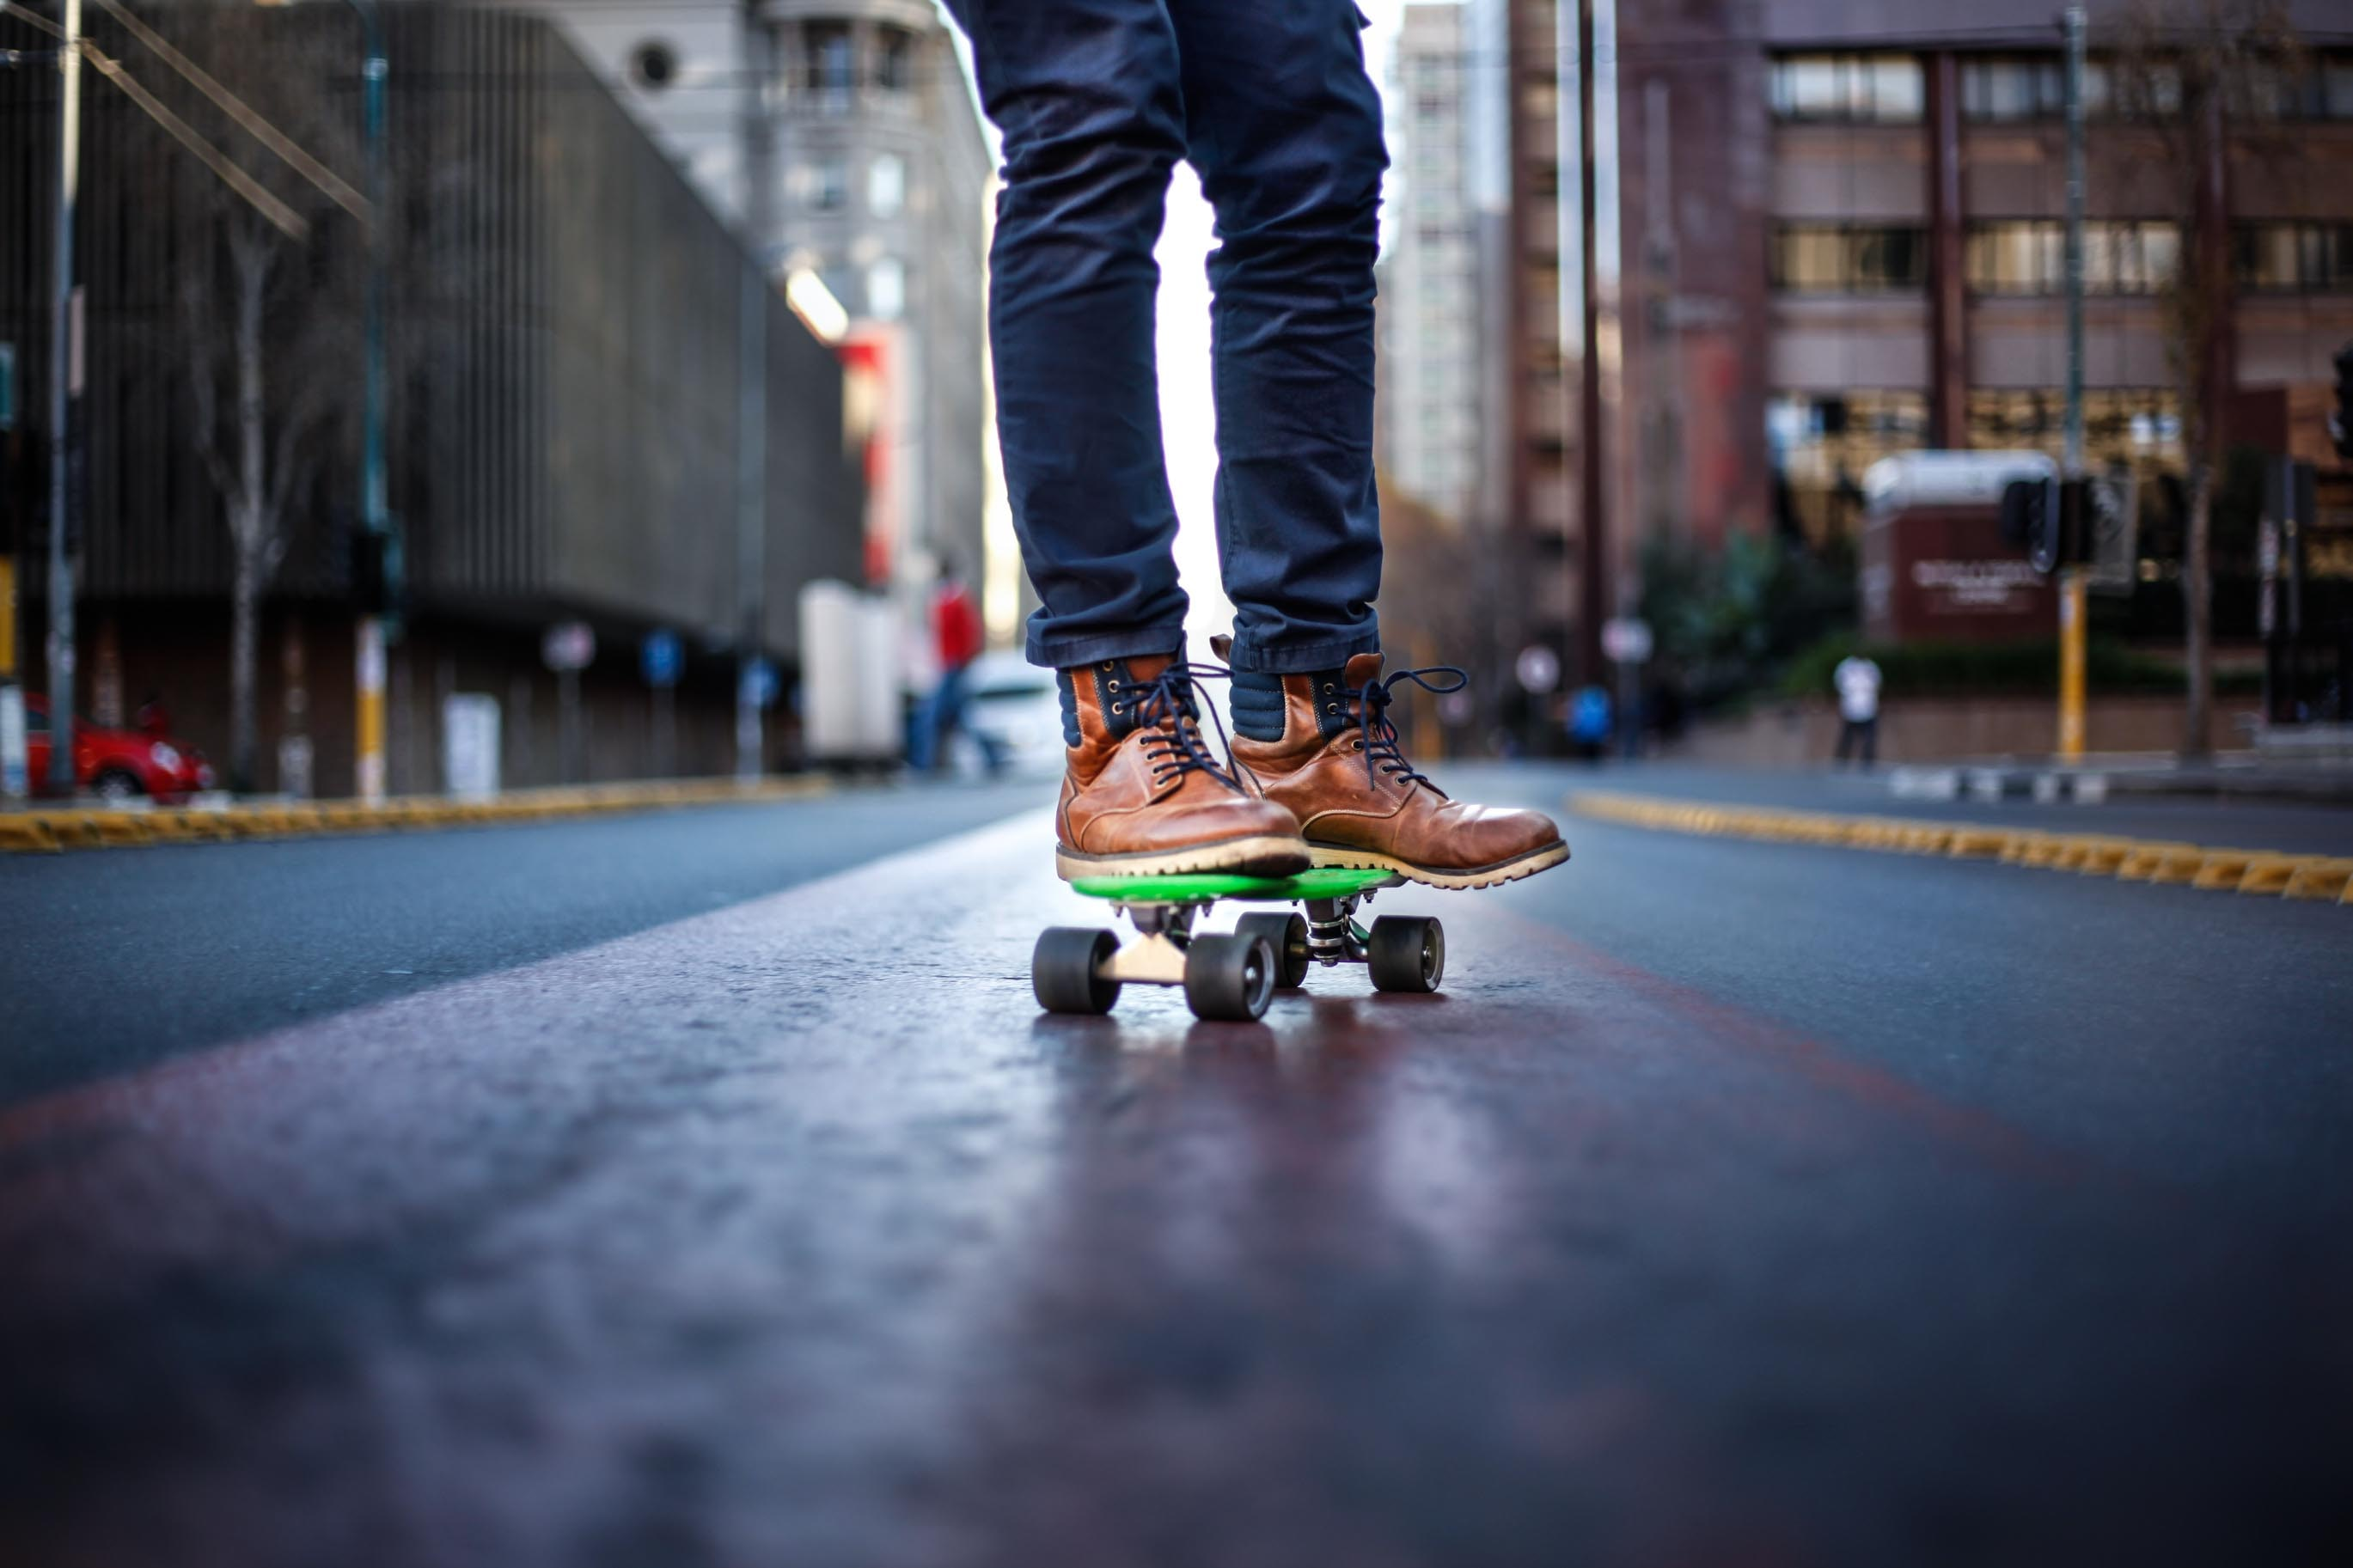 person riding skateboard